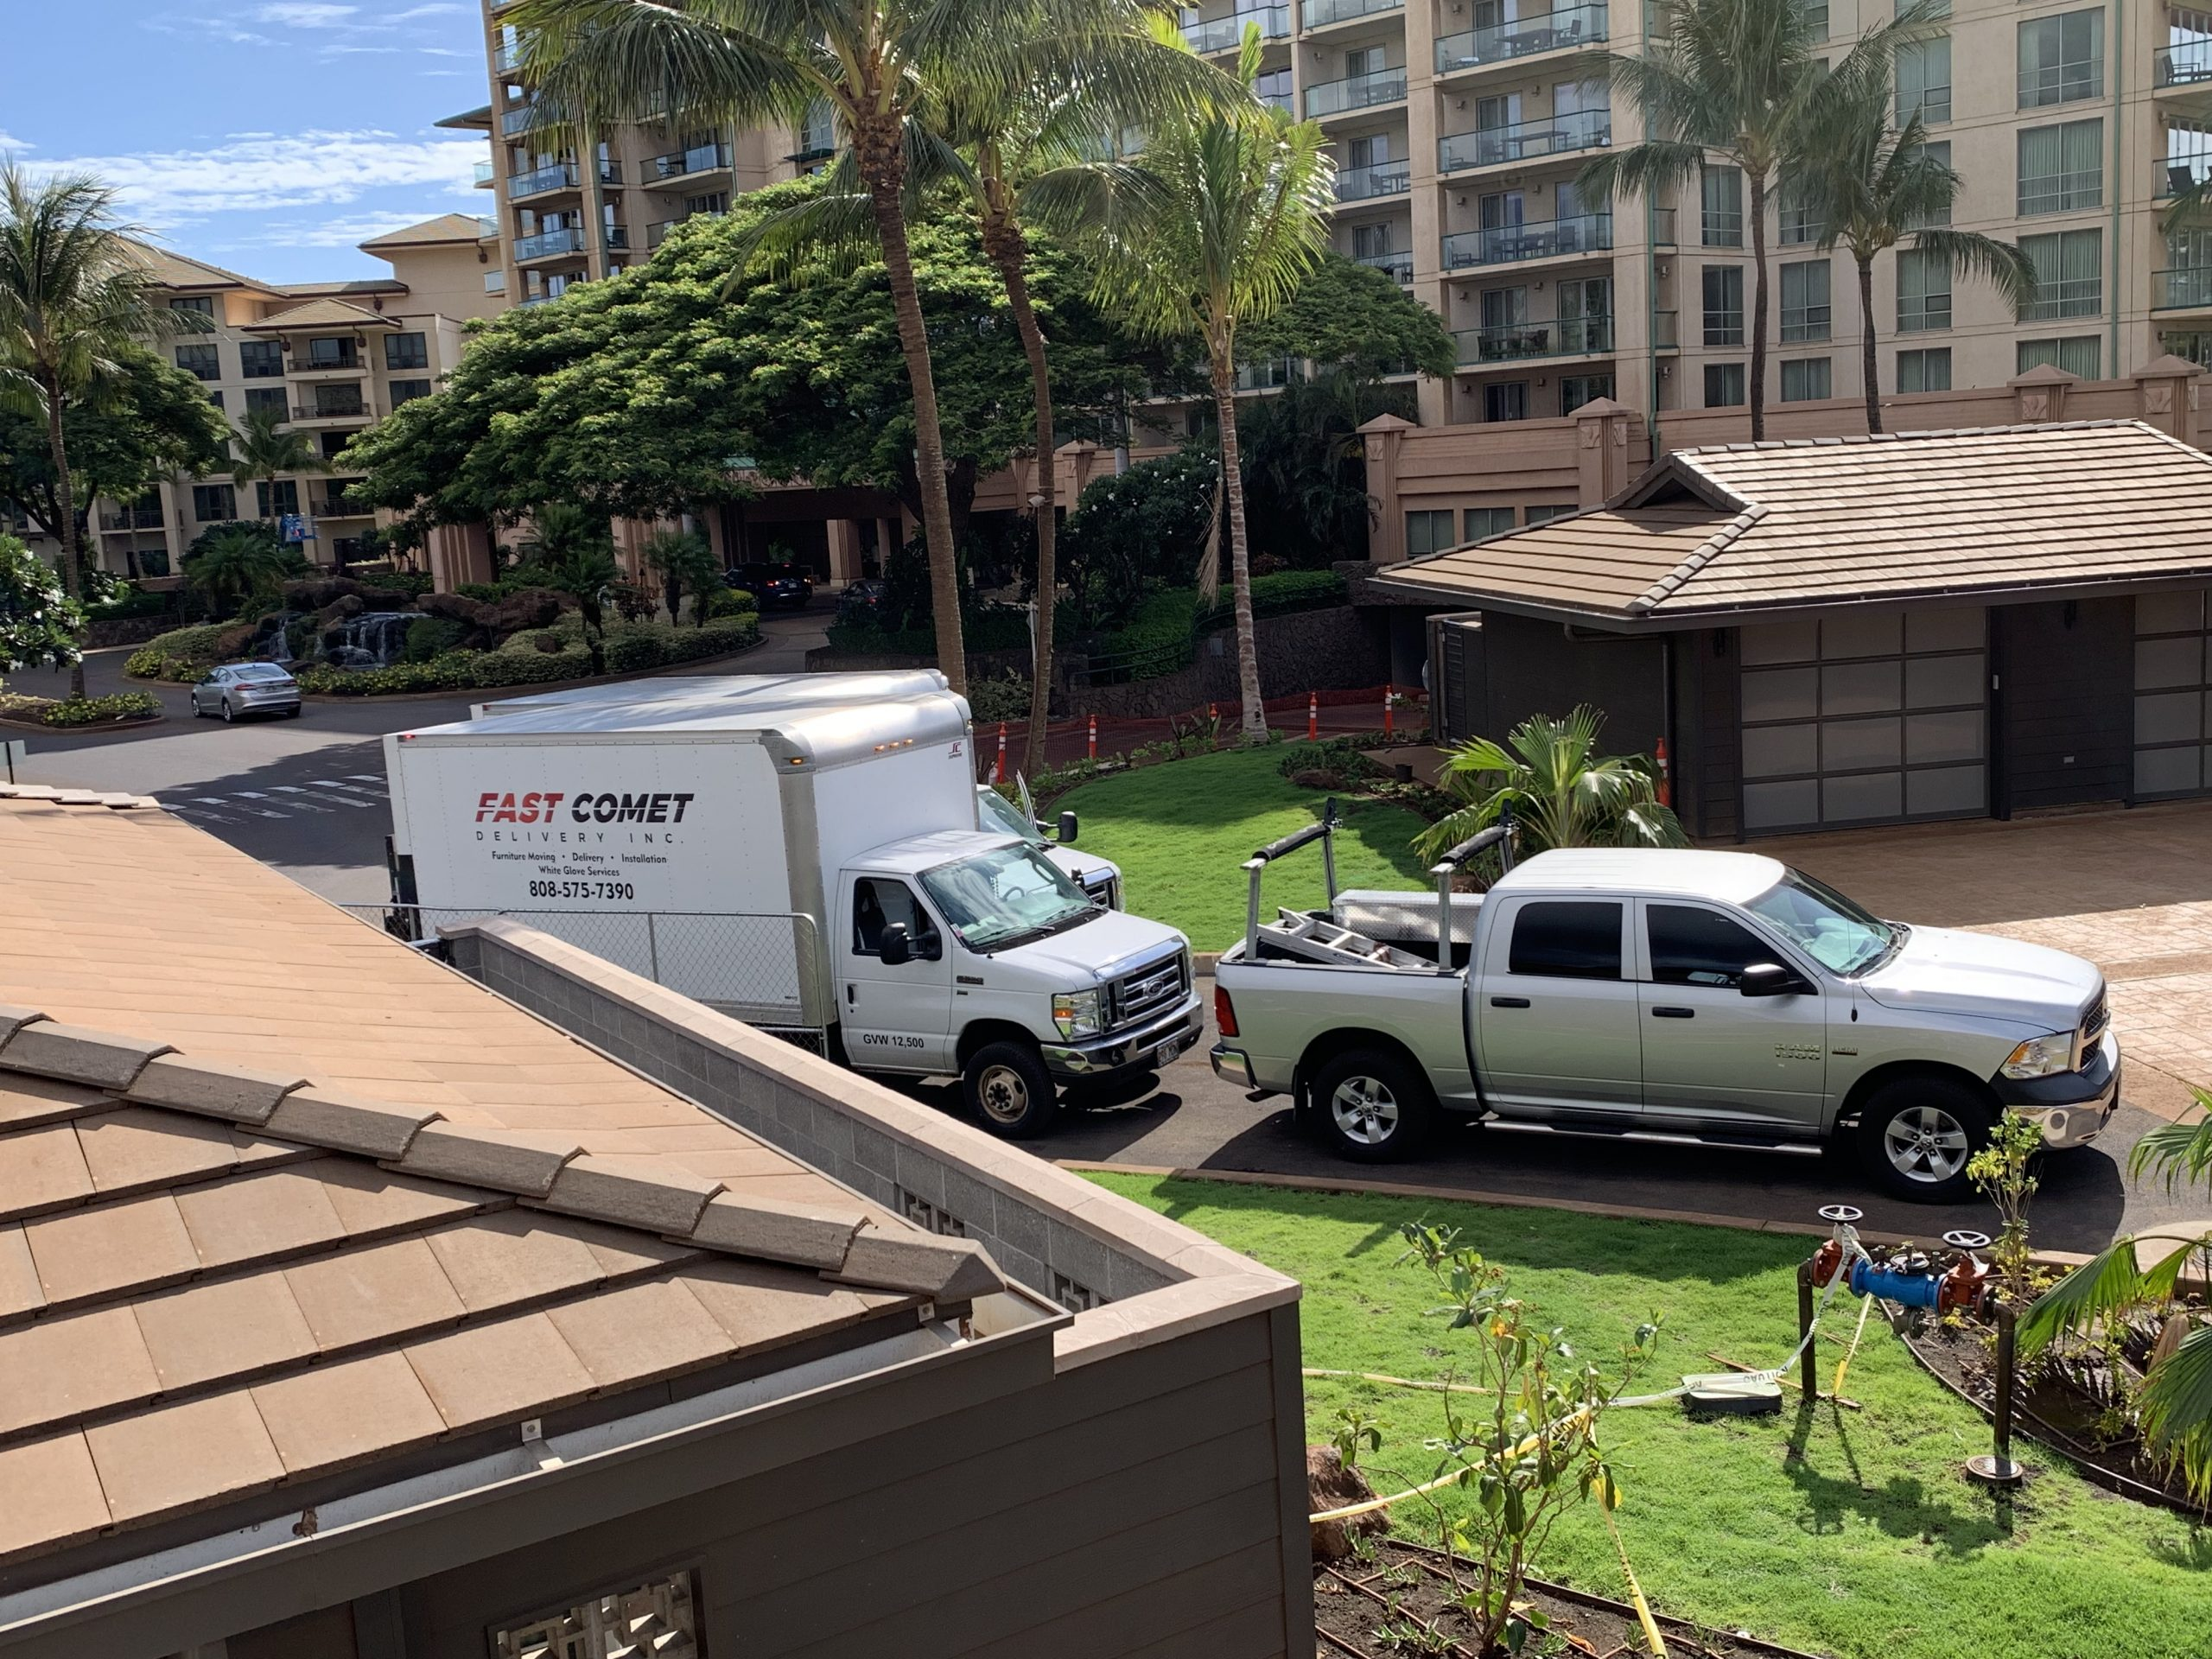 Fast Comet Delivery Truck 7 - Maui Hawaii